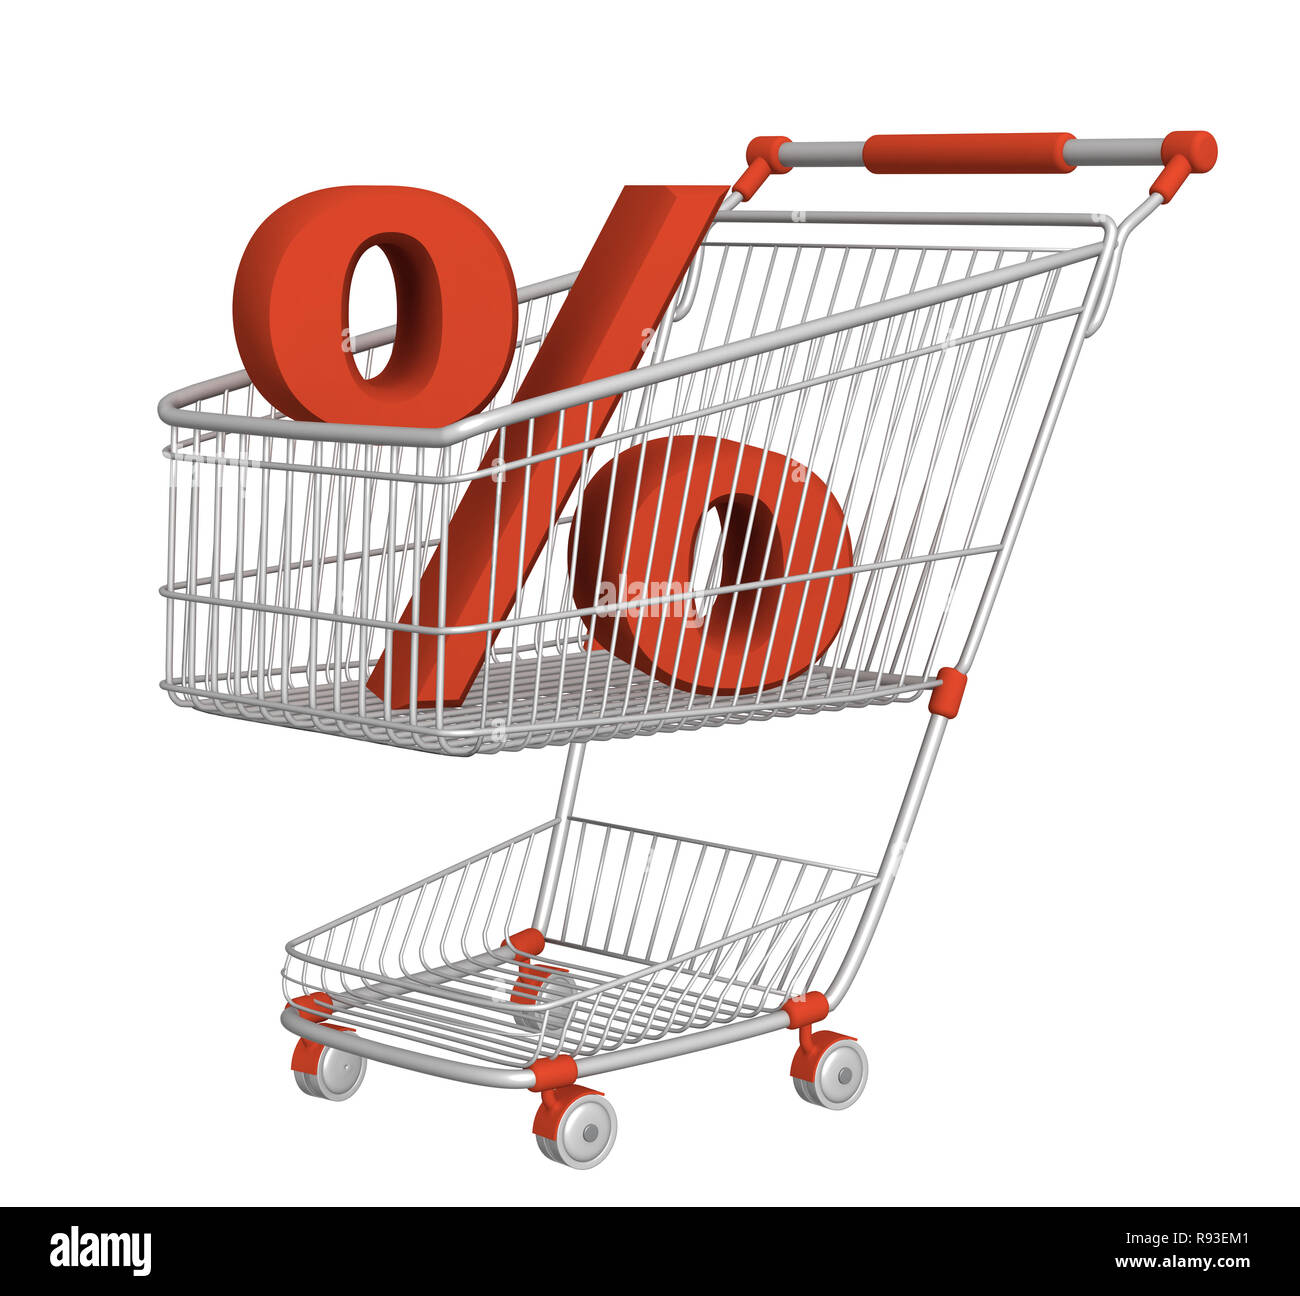 Symbol of percentage in shopping cart. Isolated over white - Stock Image